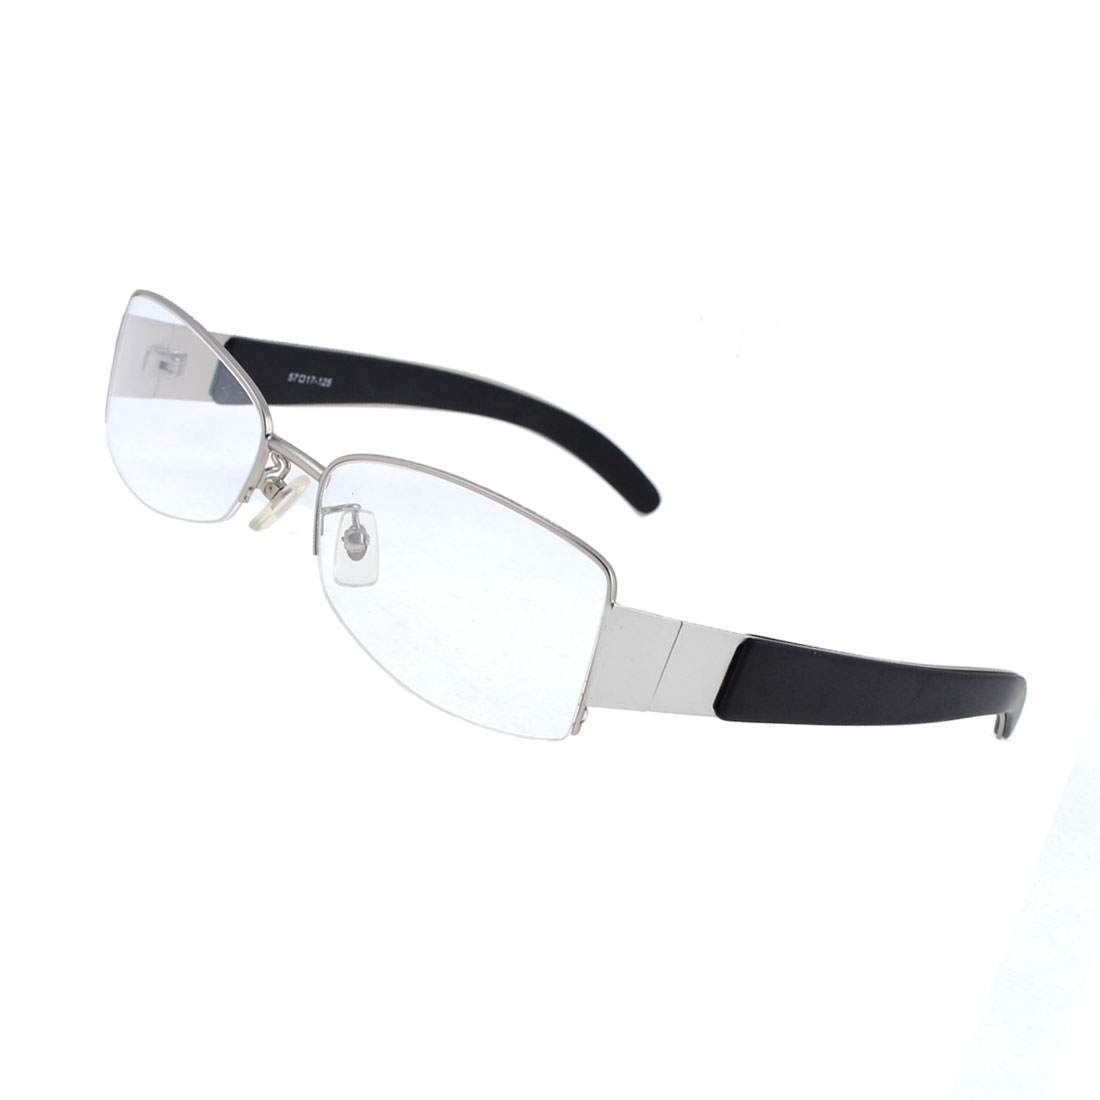 Man Black Plastic Arms Metal Half Rim Clear Lens Plain Glasses